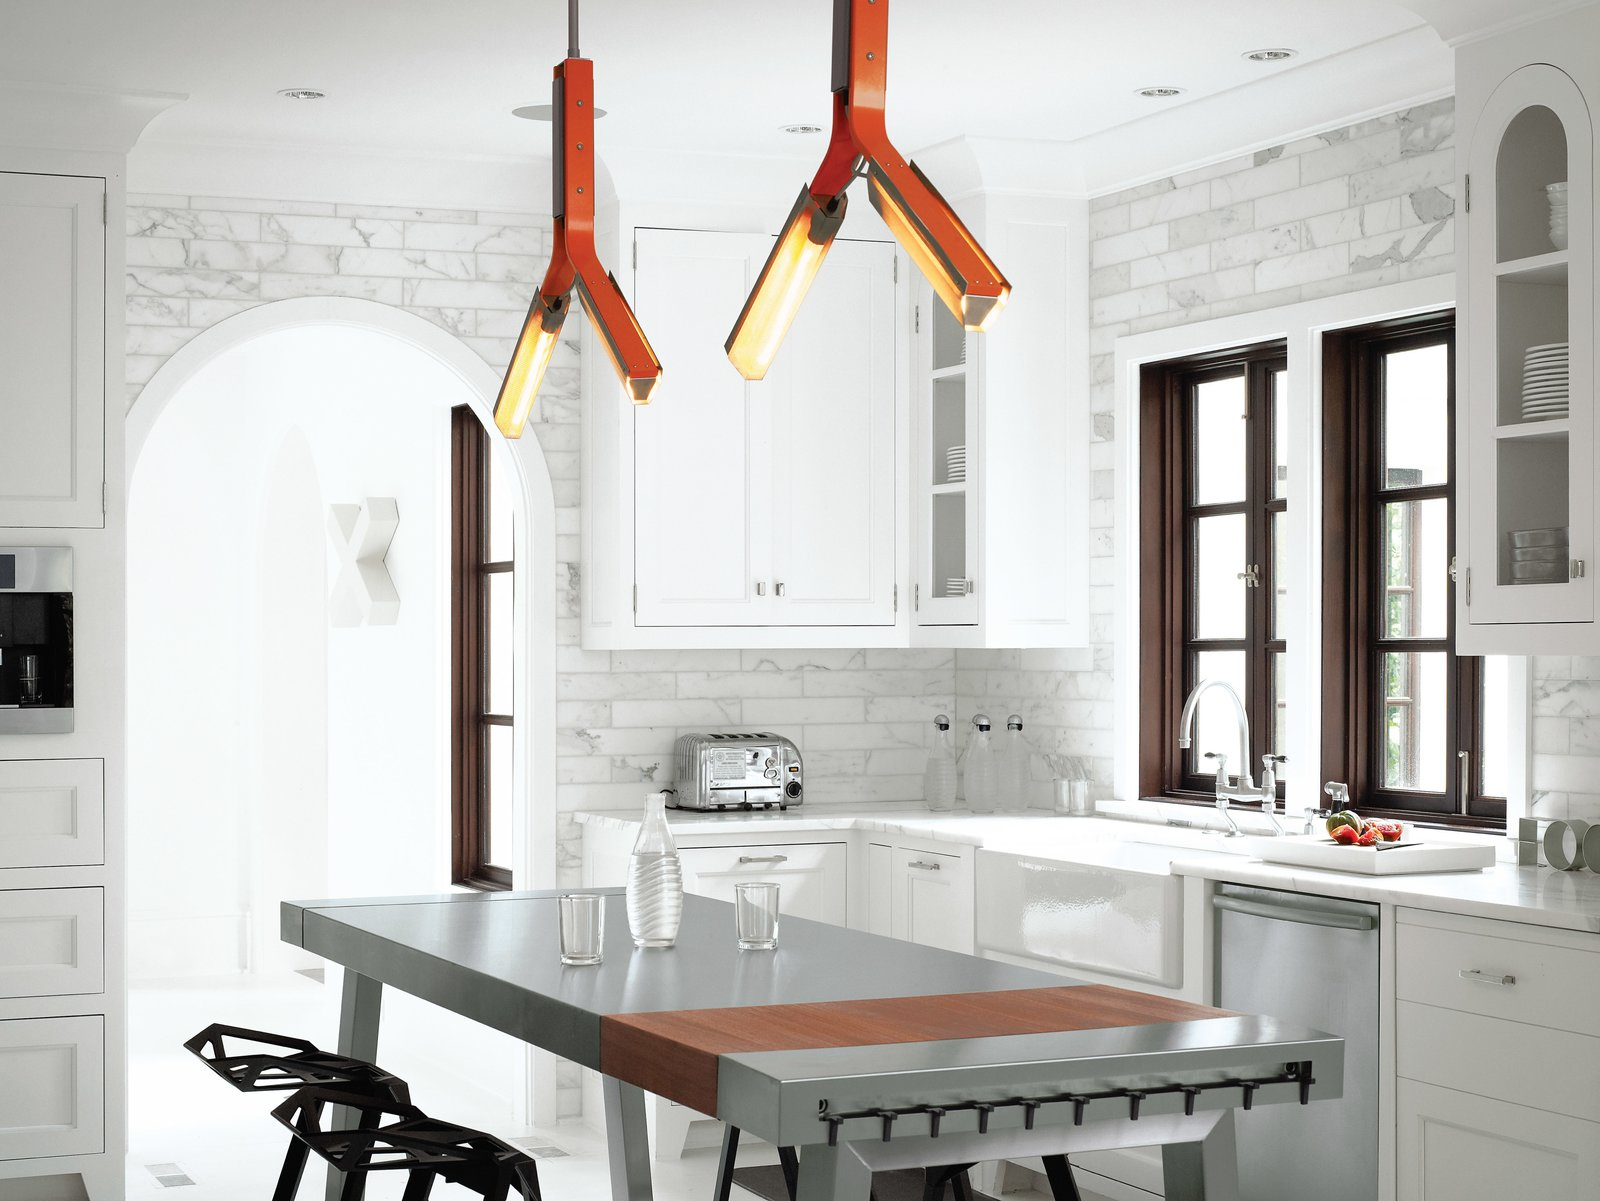 6 Contemporary Kitchen Trends That Will Last For Years to Come